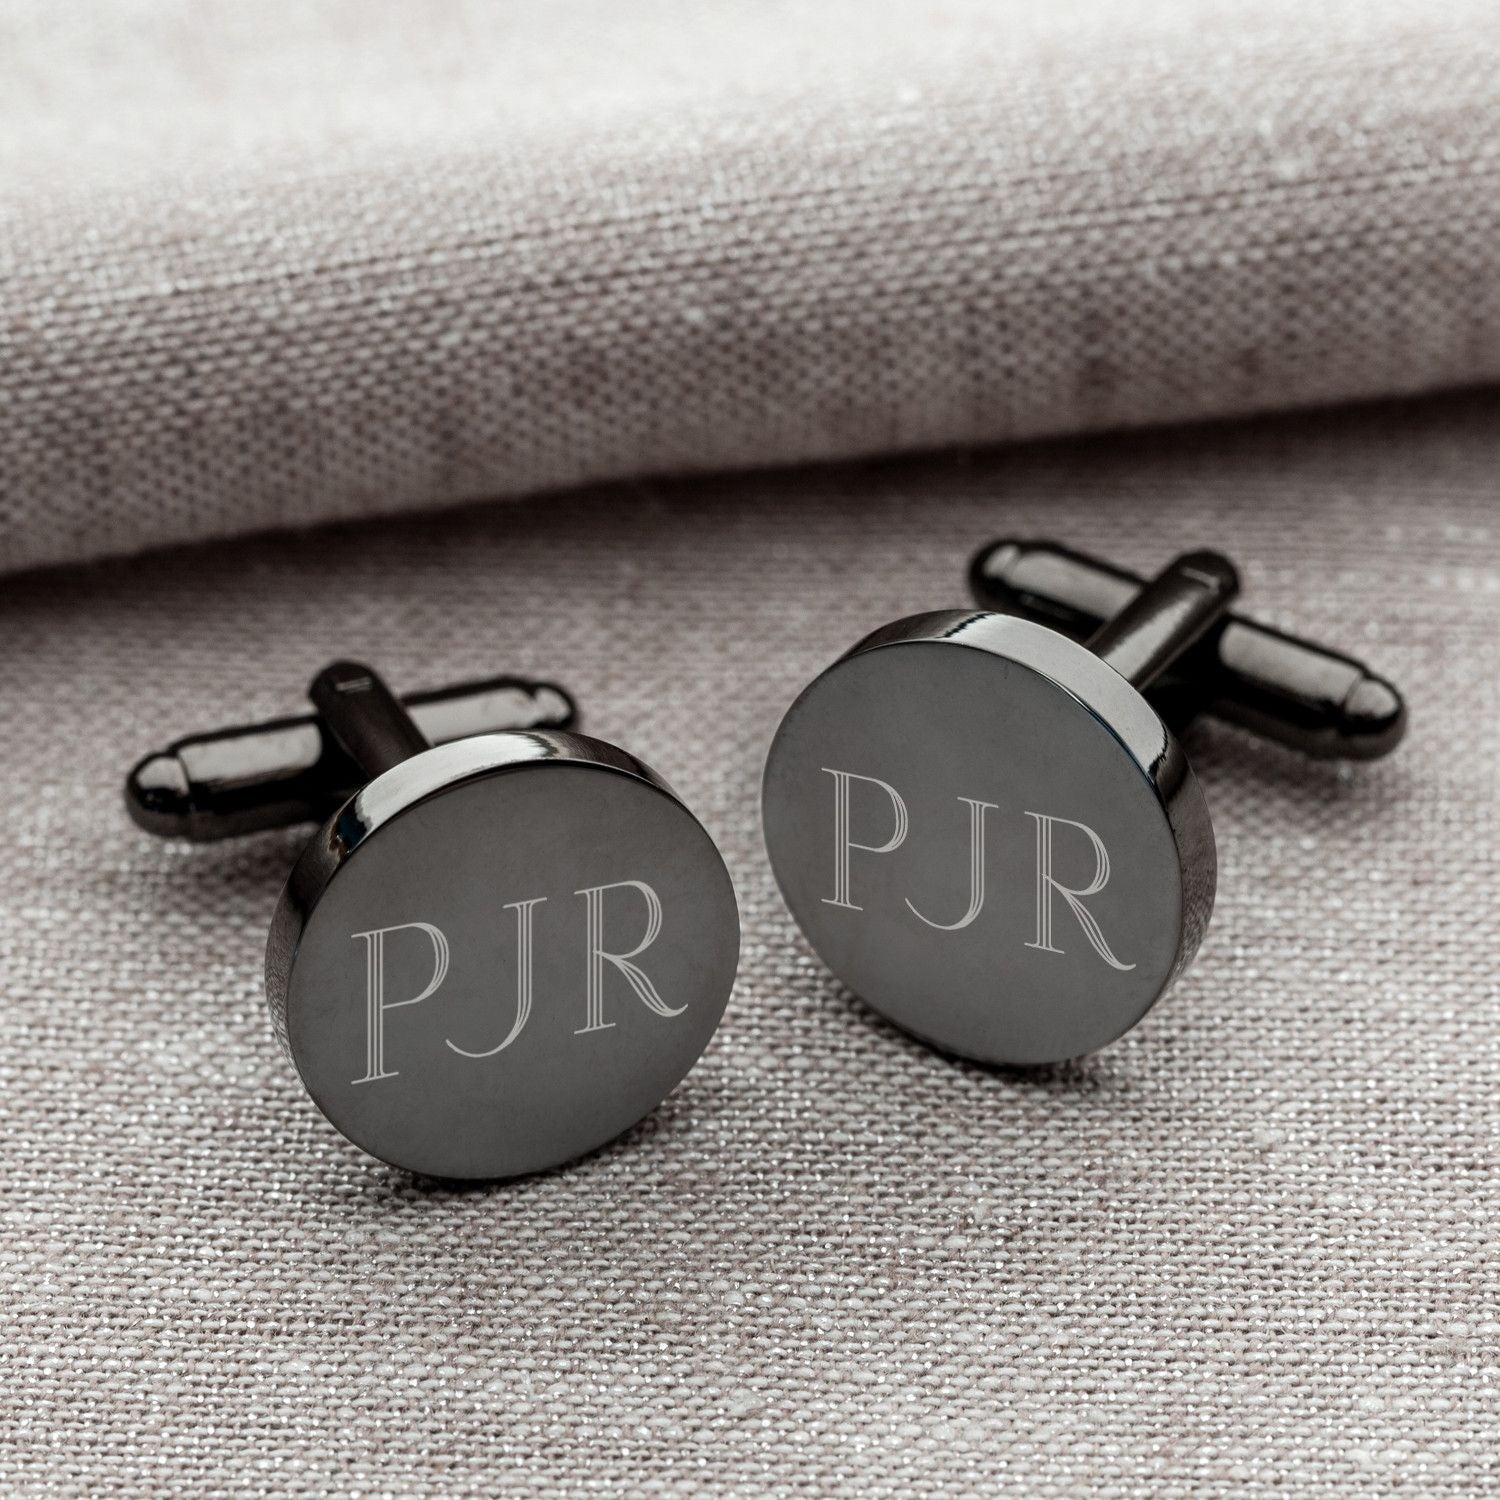 Personalized-Cufflinks-Gunmetal-Round-Groomsmen-Gifts